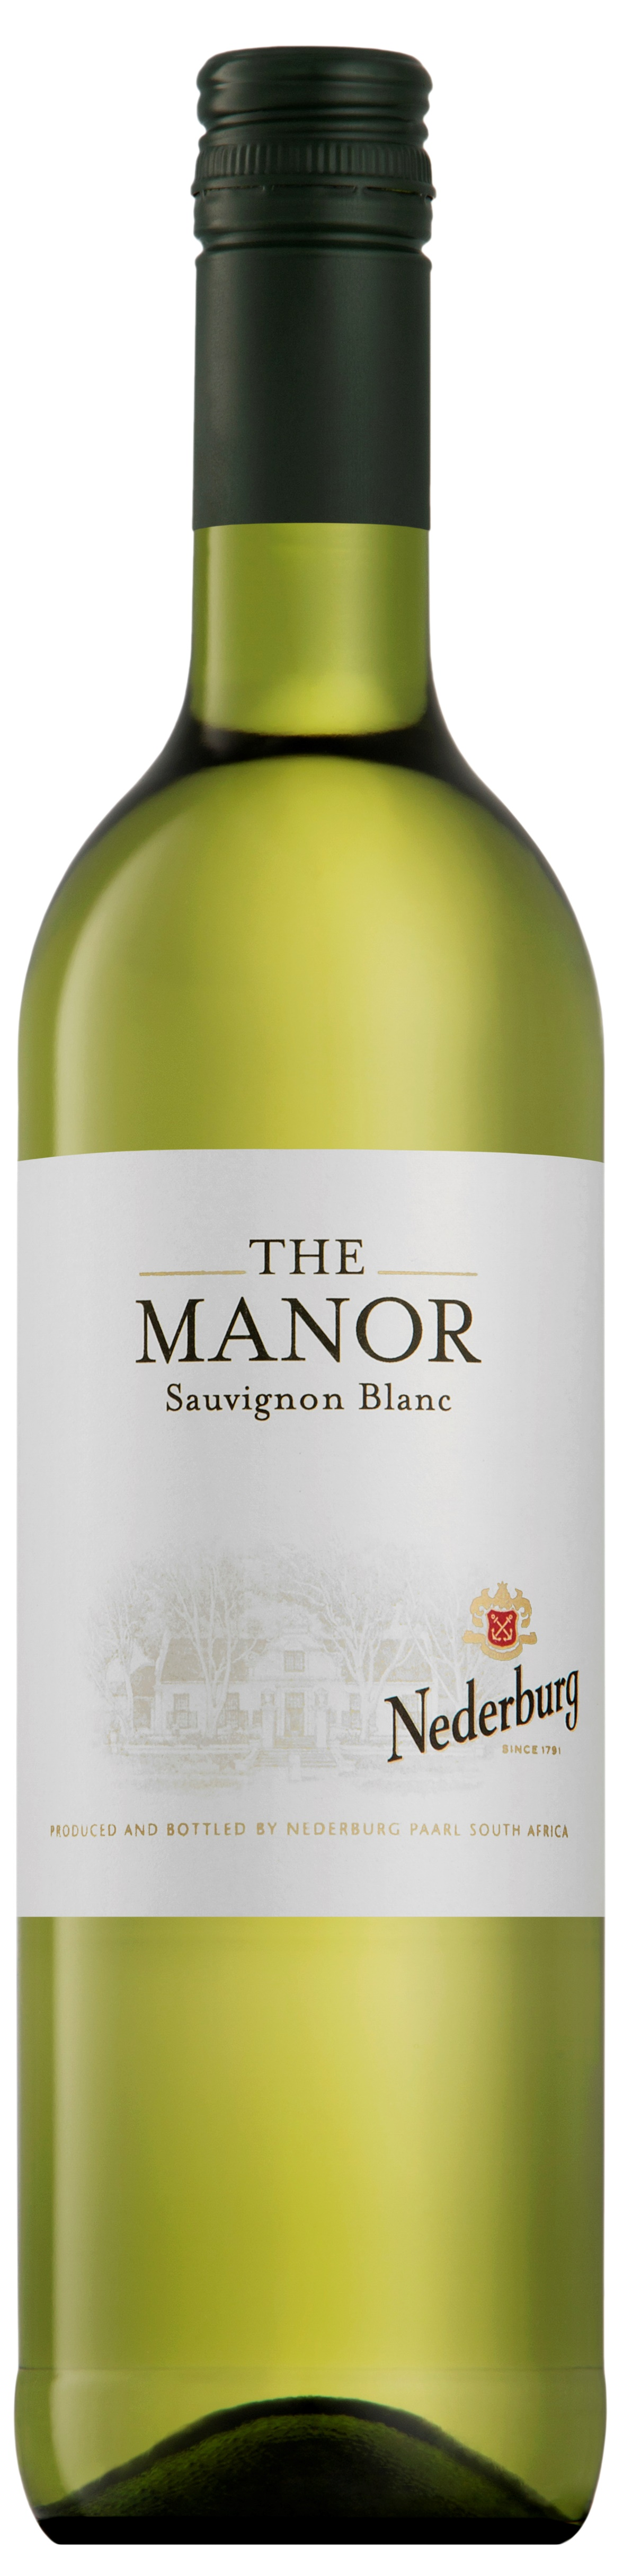 Nederburg The Manor, Sauvignon Blanc